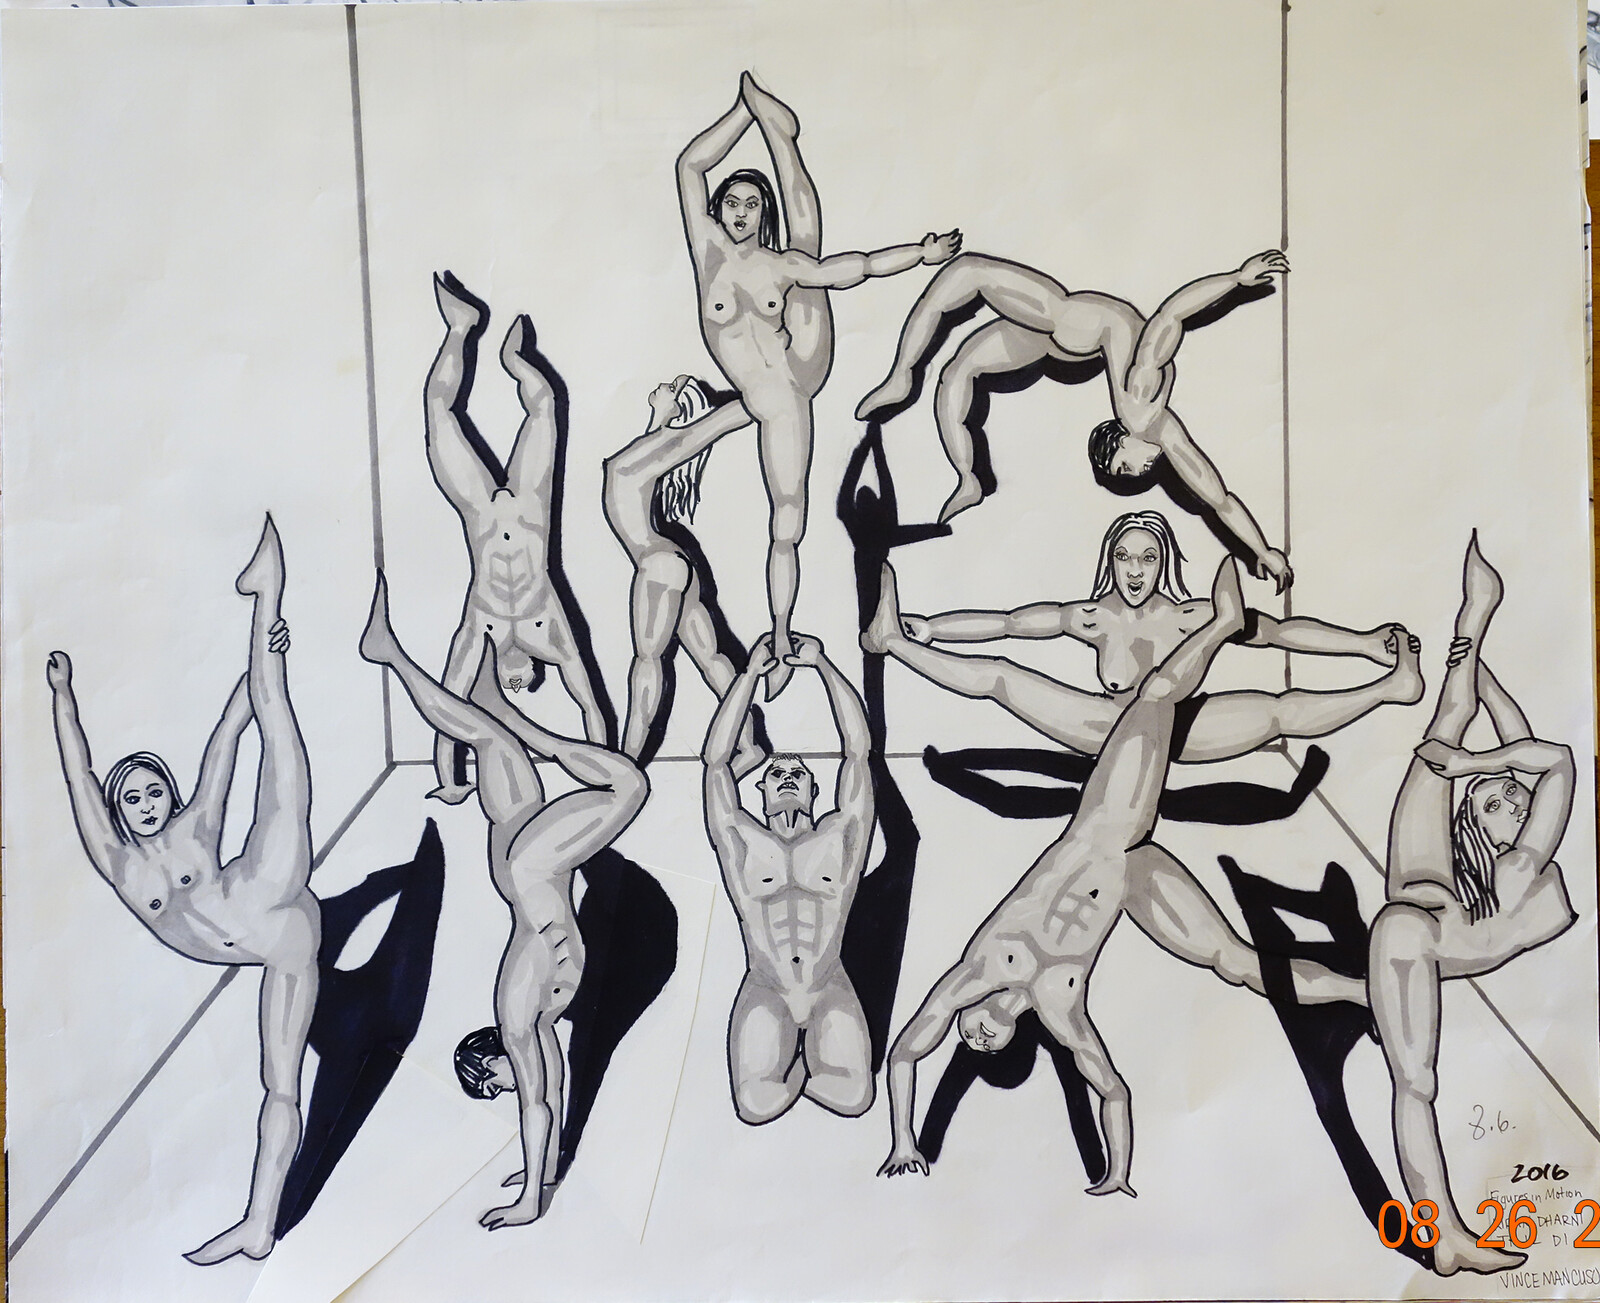 Project 14: Draw 5 men and 5 woman dancing on a single dance floor. Add 3D values.